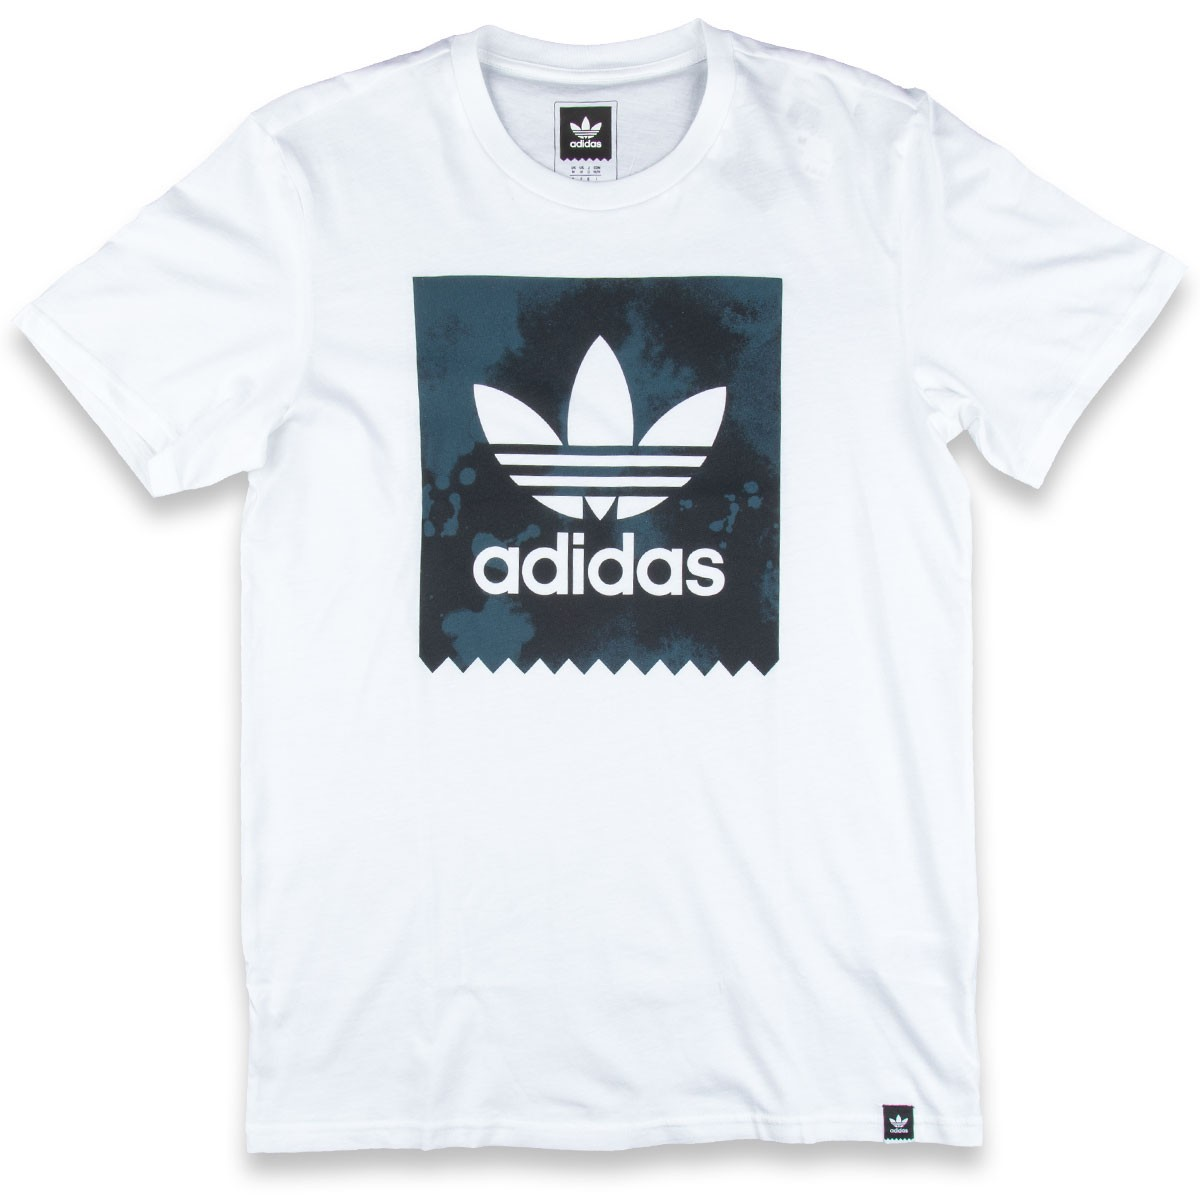 adidas d2d fill t shirt white. Black Bedroom Furniture Sets. Home Design Ideas